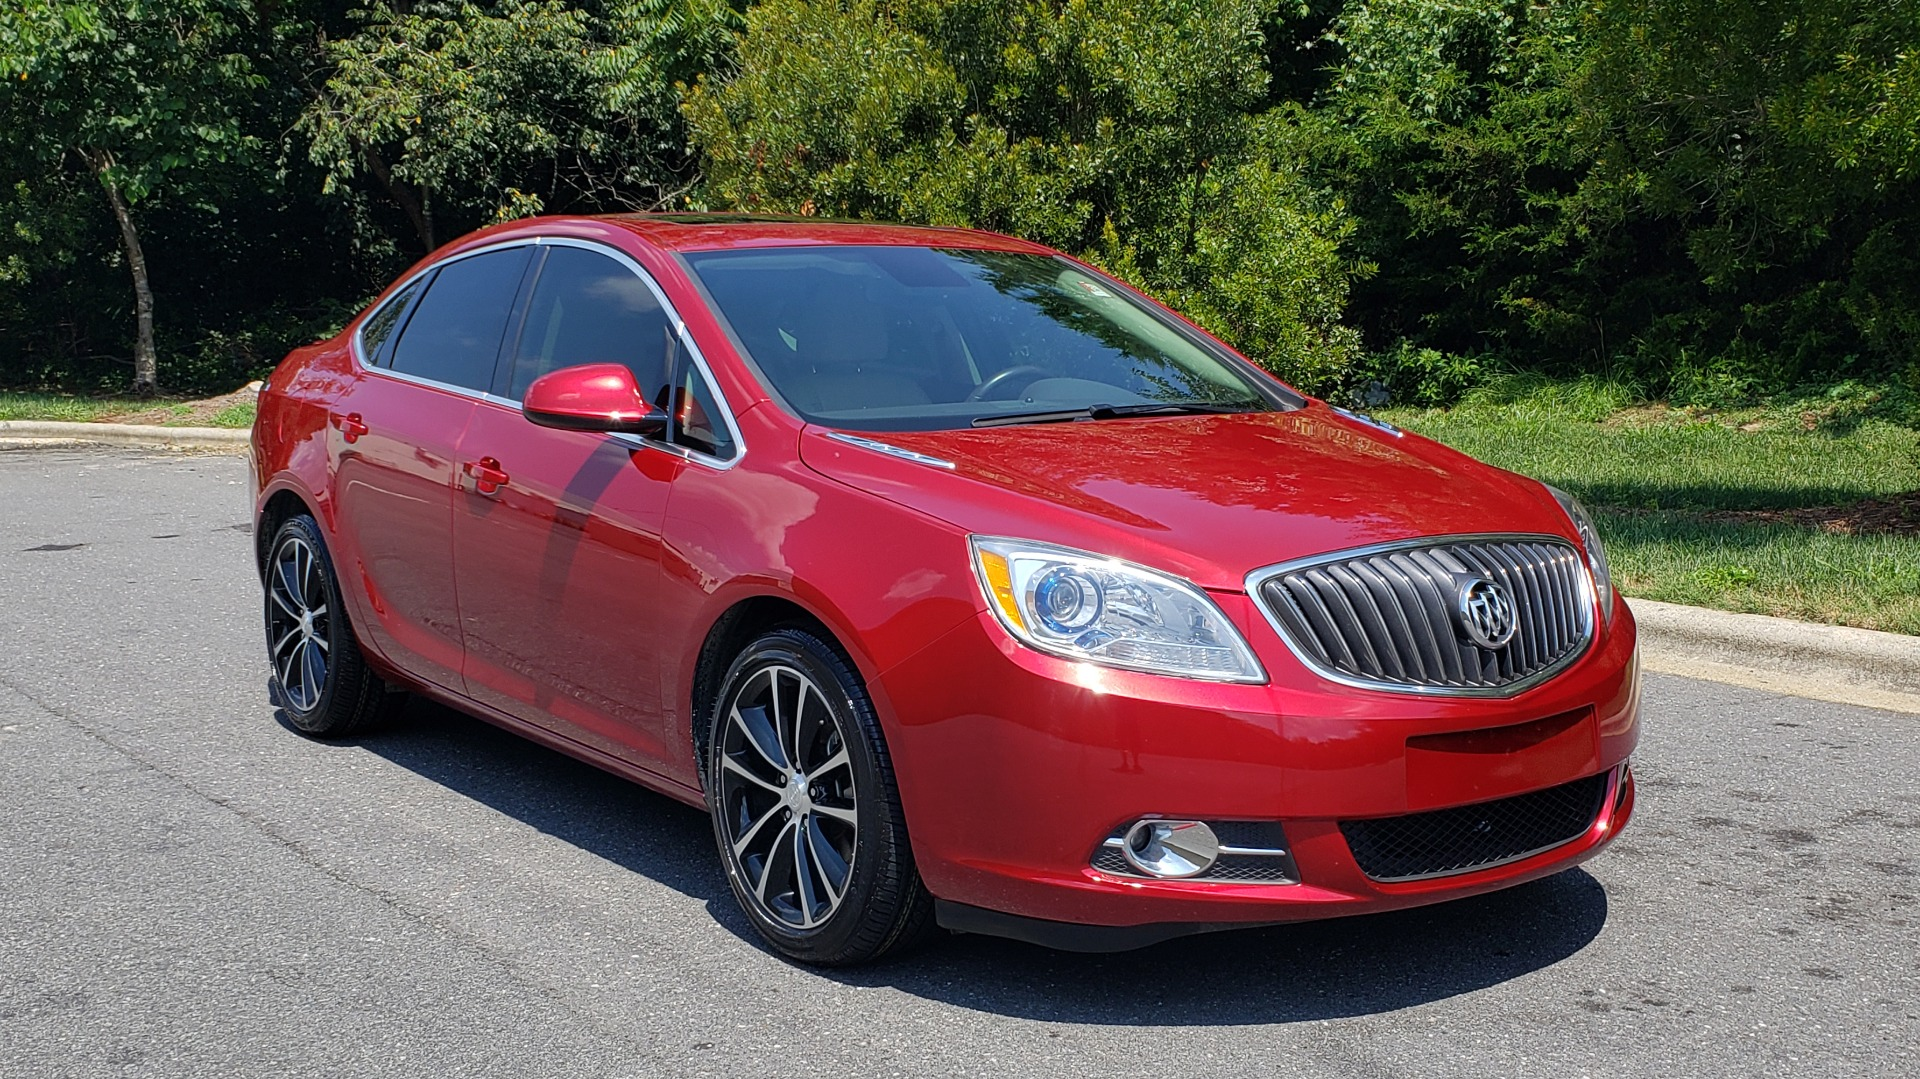 Used 2016 Buick VERANO SPORT TOURING / SUNROOF / HTD STS / 18IN WHEELS / REARVIEW for sale Sold at Formula Imports in Charlotte NC 28227 5